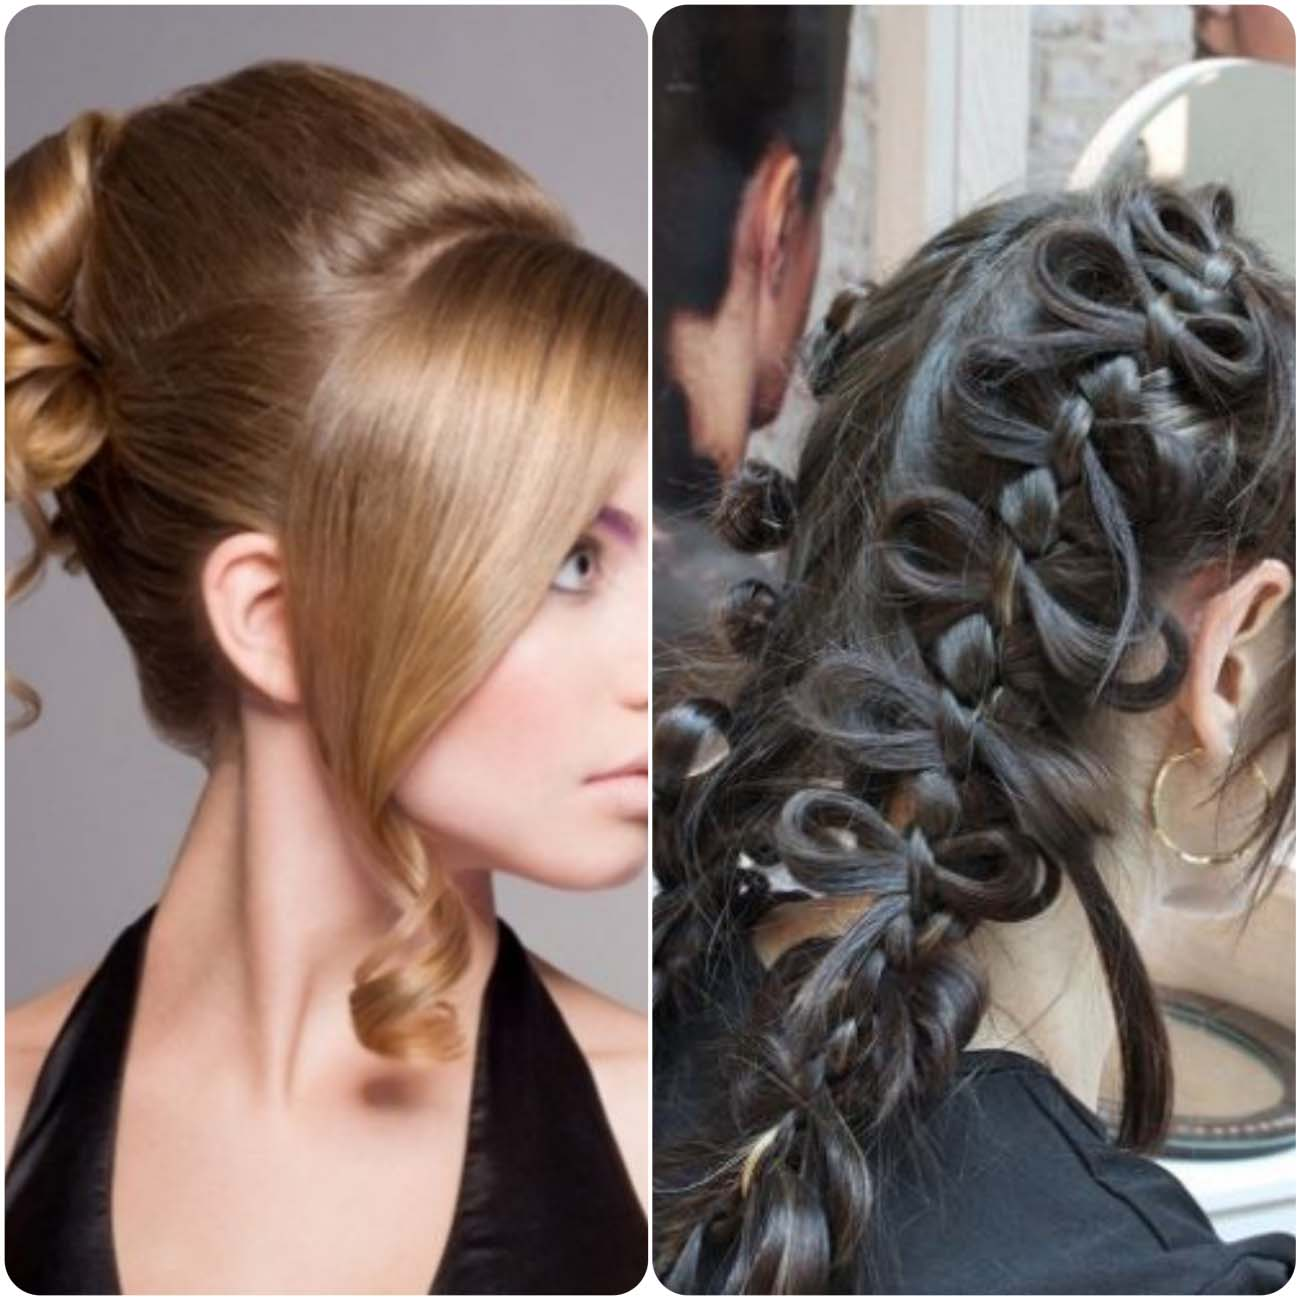 Miraculous Party Hairstyles Step By Step 2016 Stylo Planet Hairstyles For Women Draintrainus